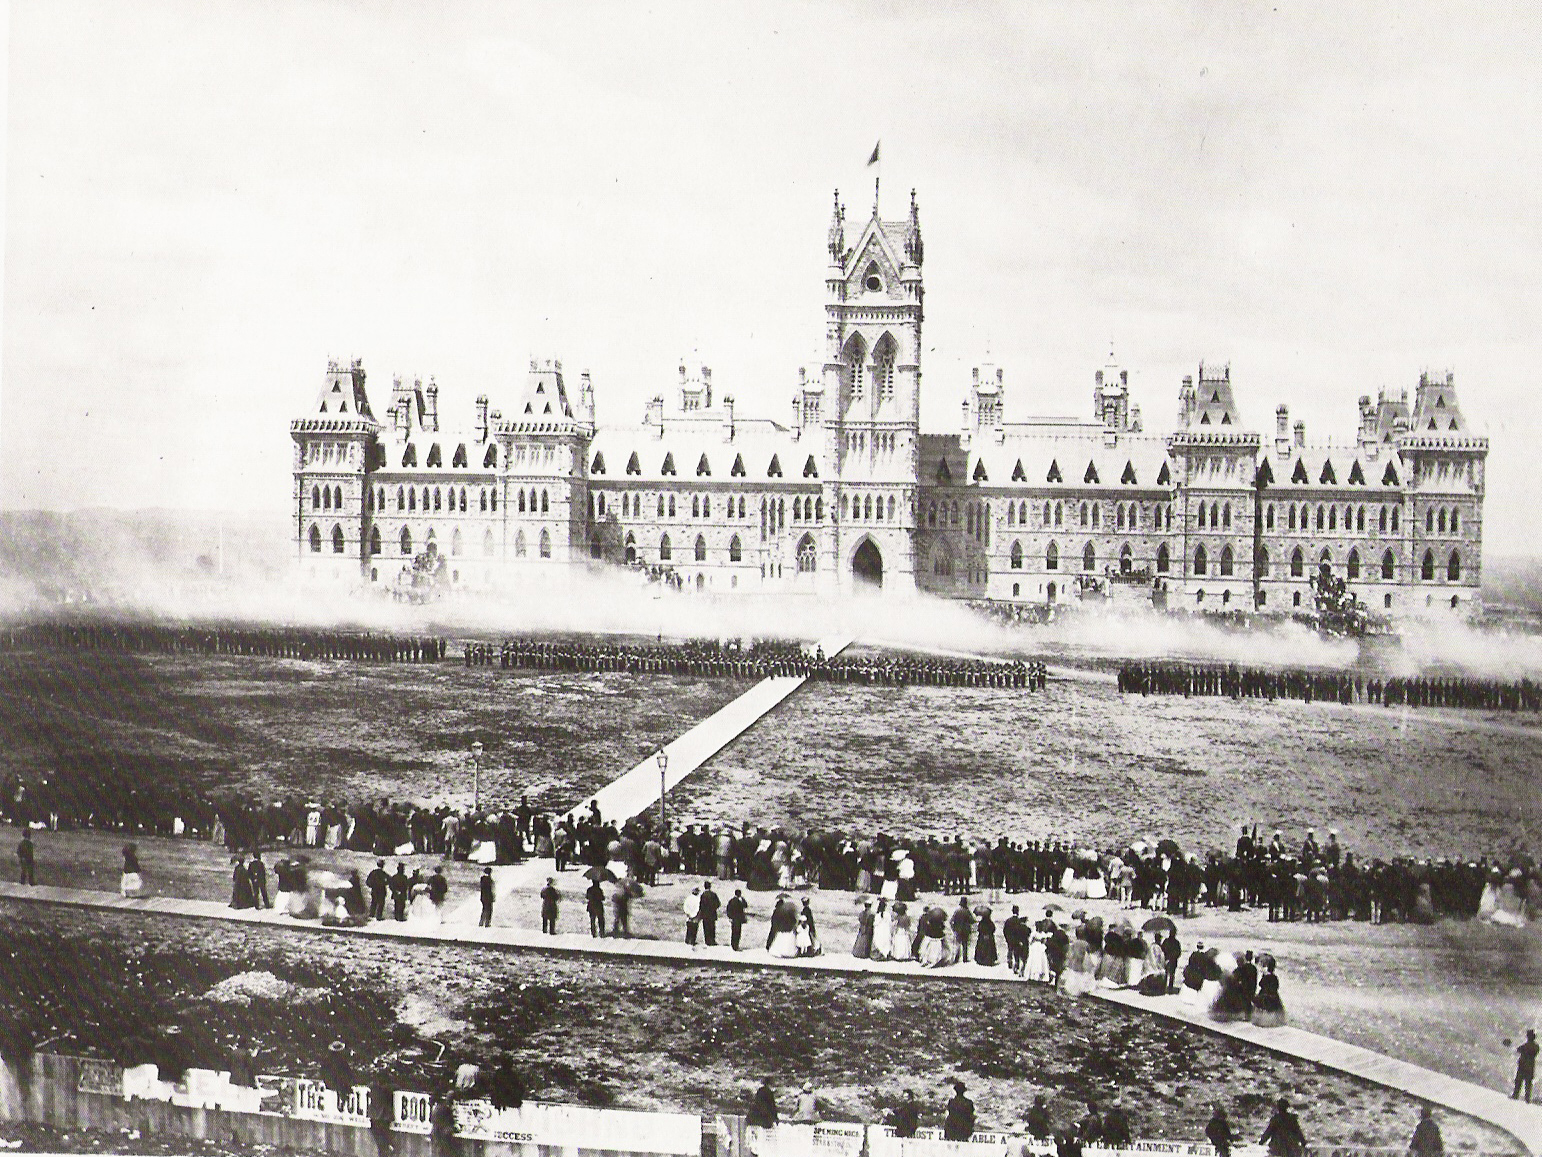 Troops deliver a feu de joie on Parliament Hill for the Queen's Birthday Review on May 24, 1868.